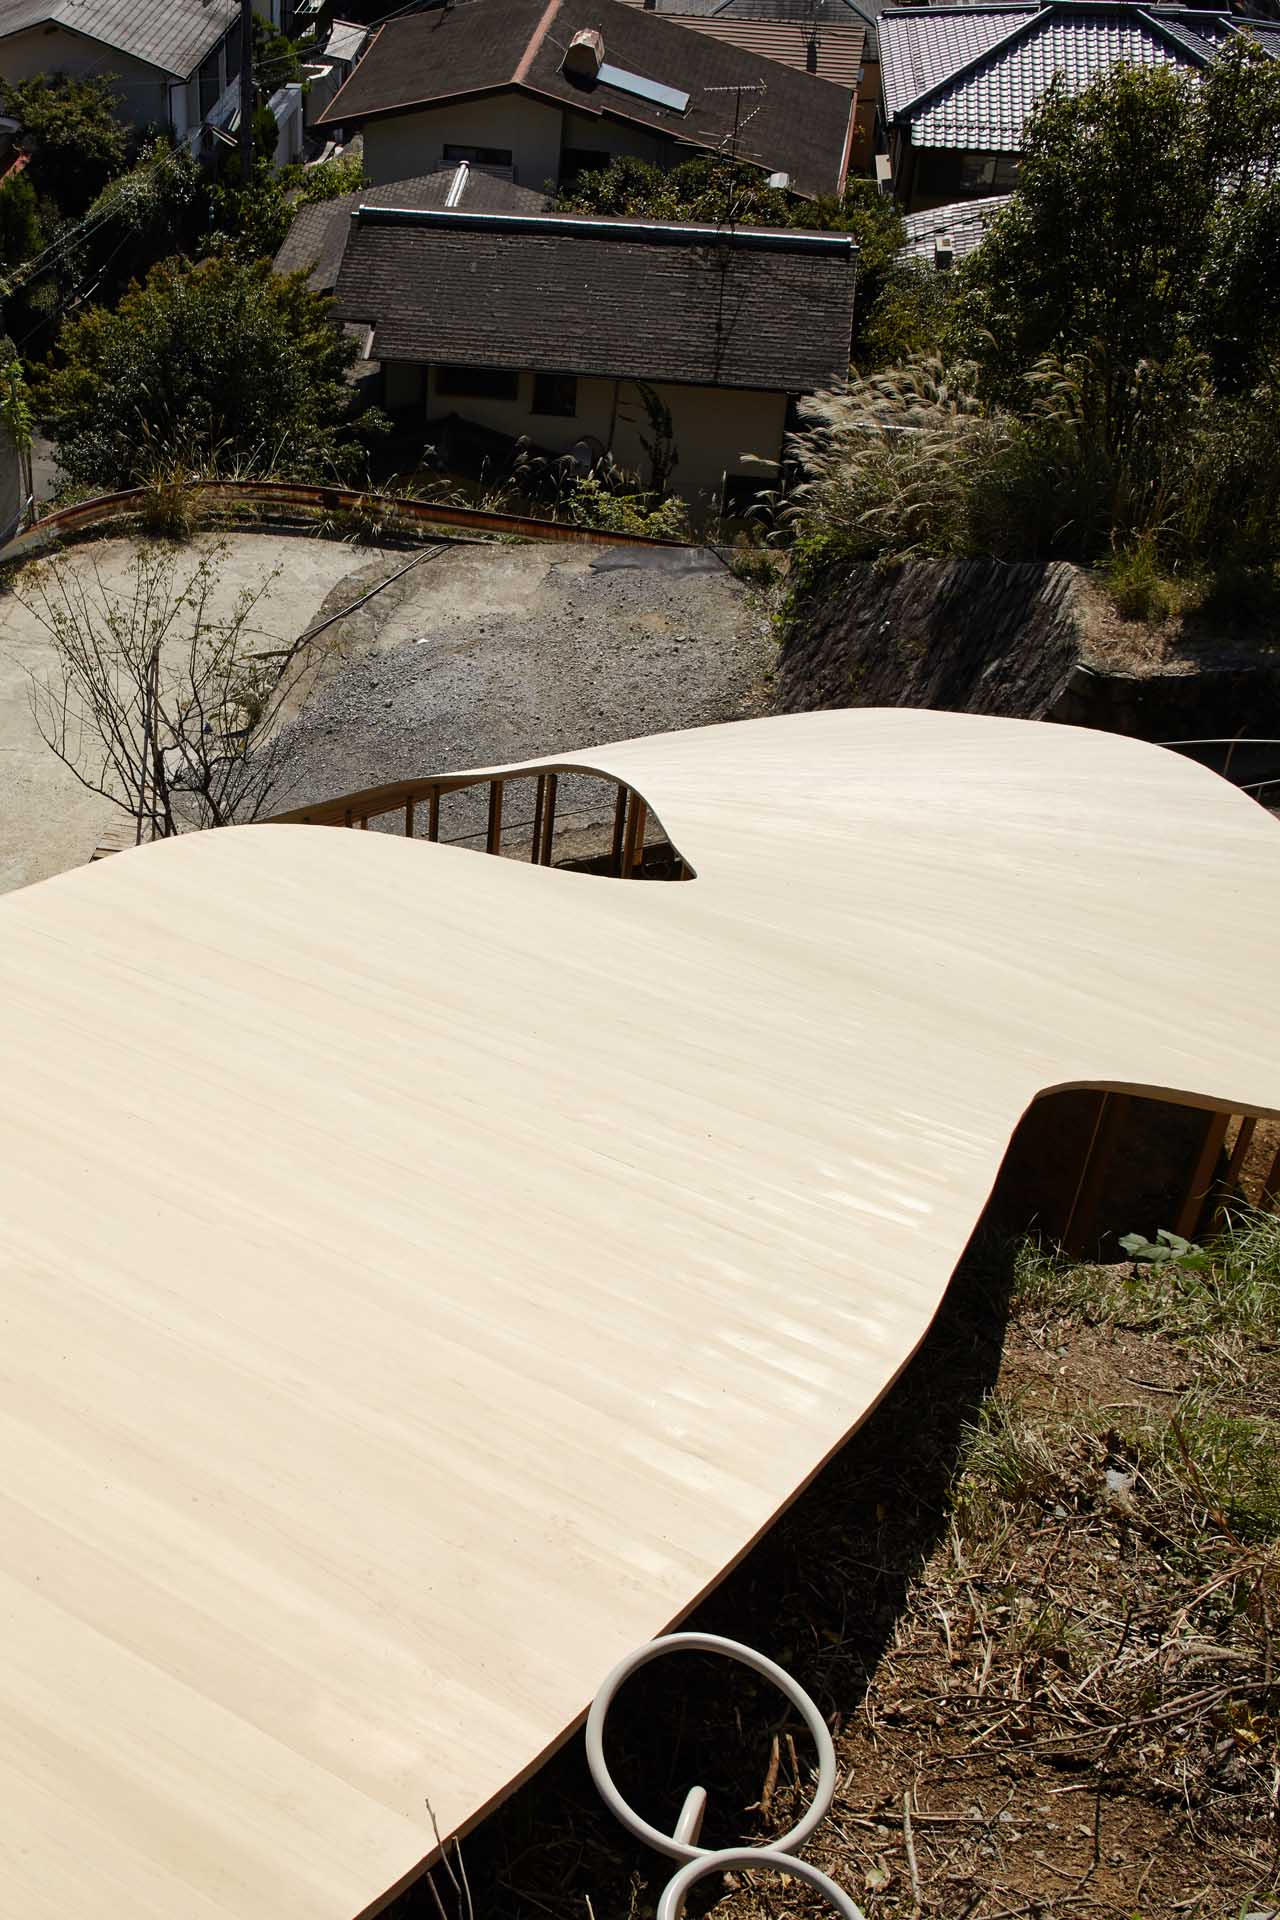 The canopy from above seems to flow down the hill. & A sinuous pavilion by Ryue Nishizawa and nendo in Kyoto - uncube